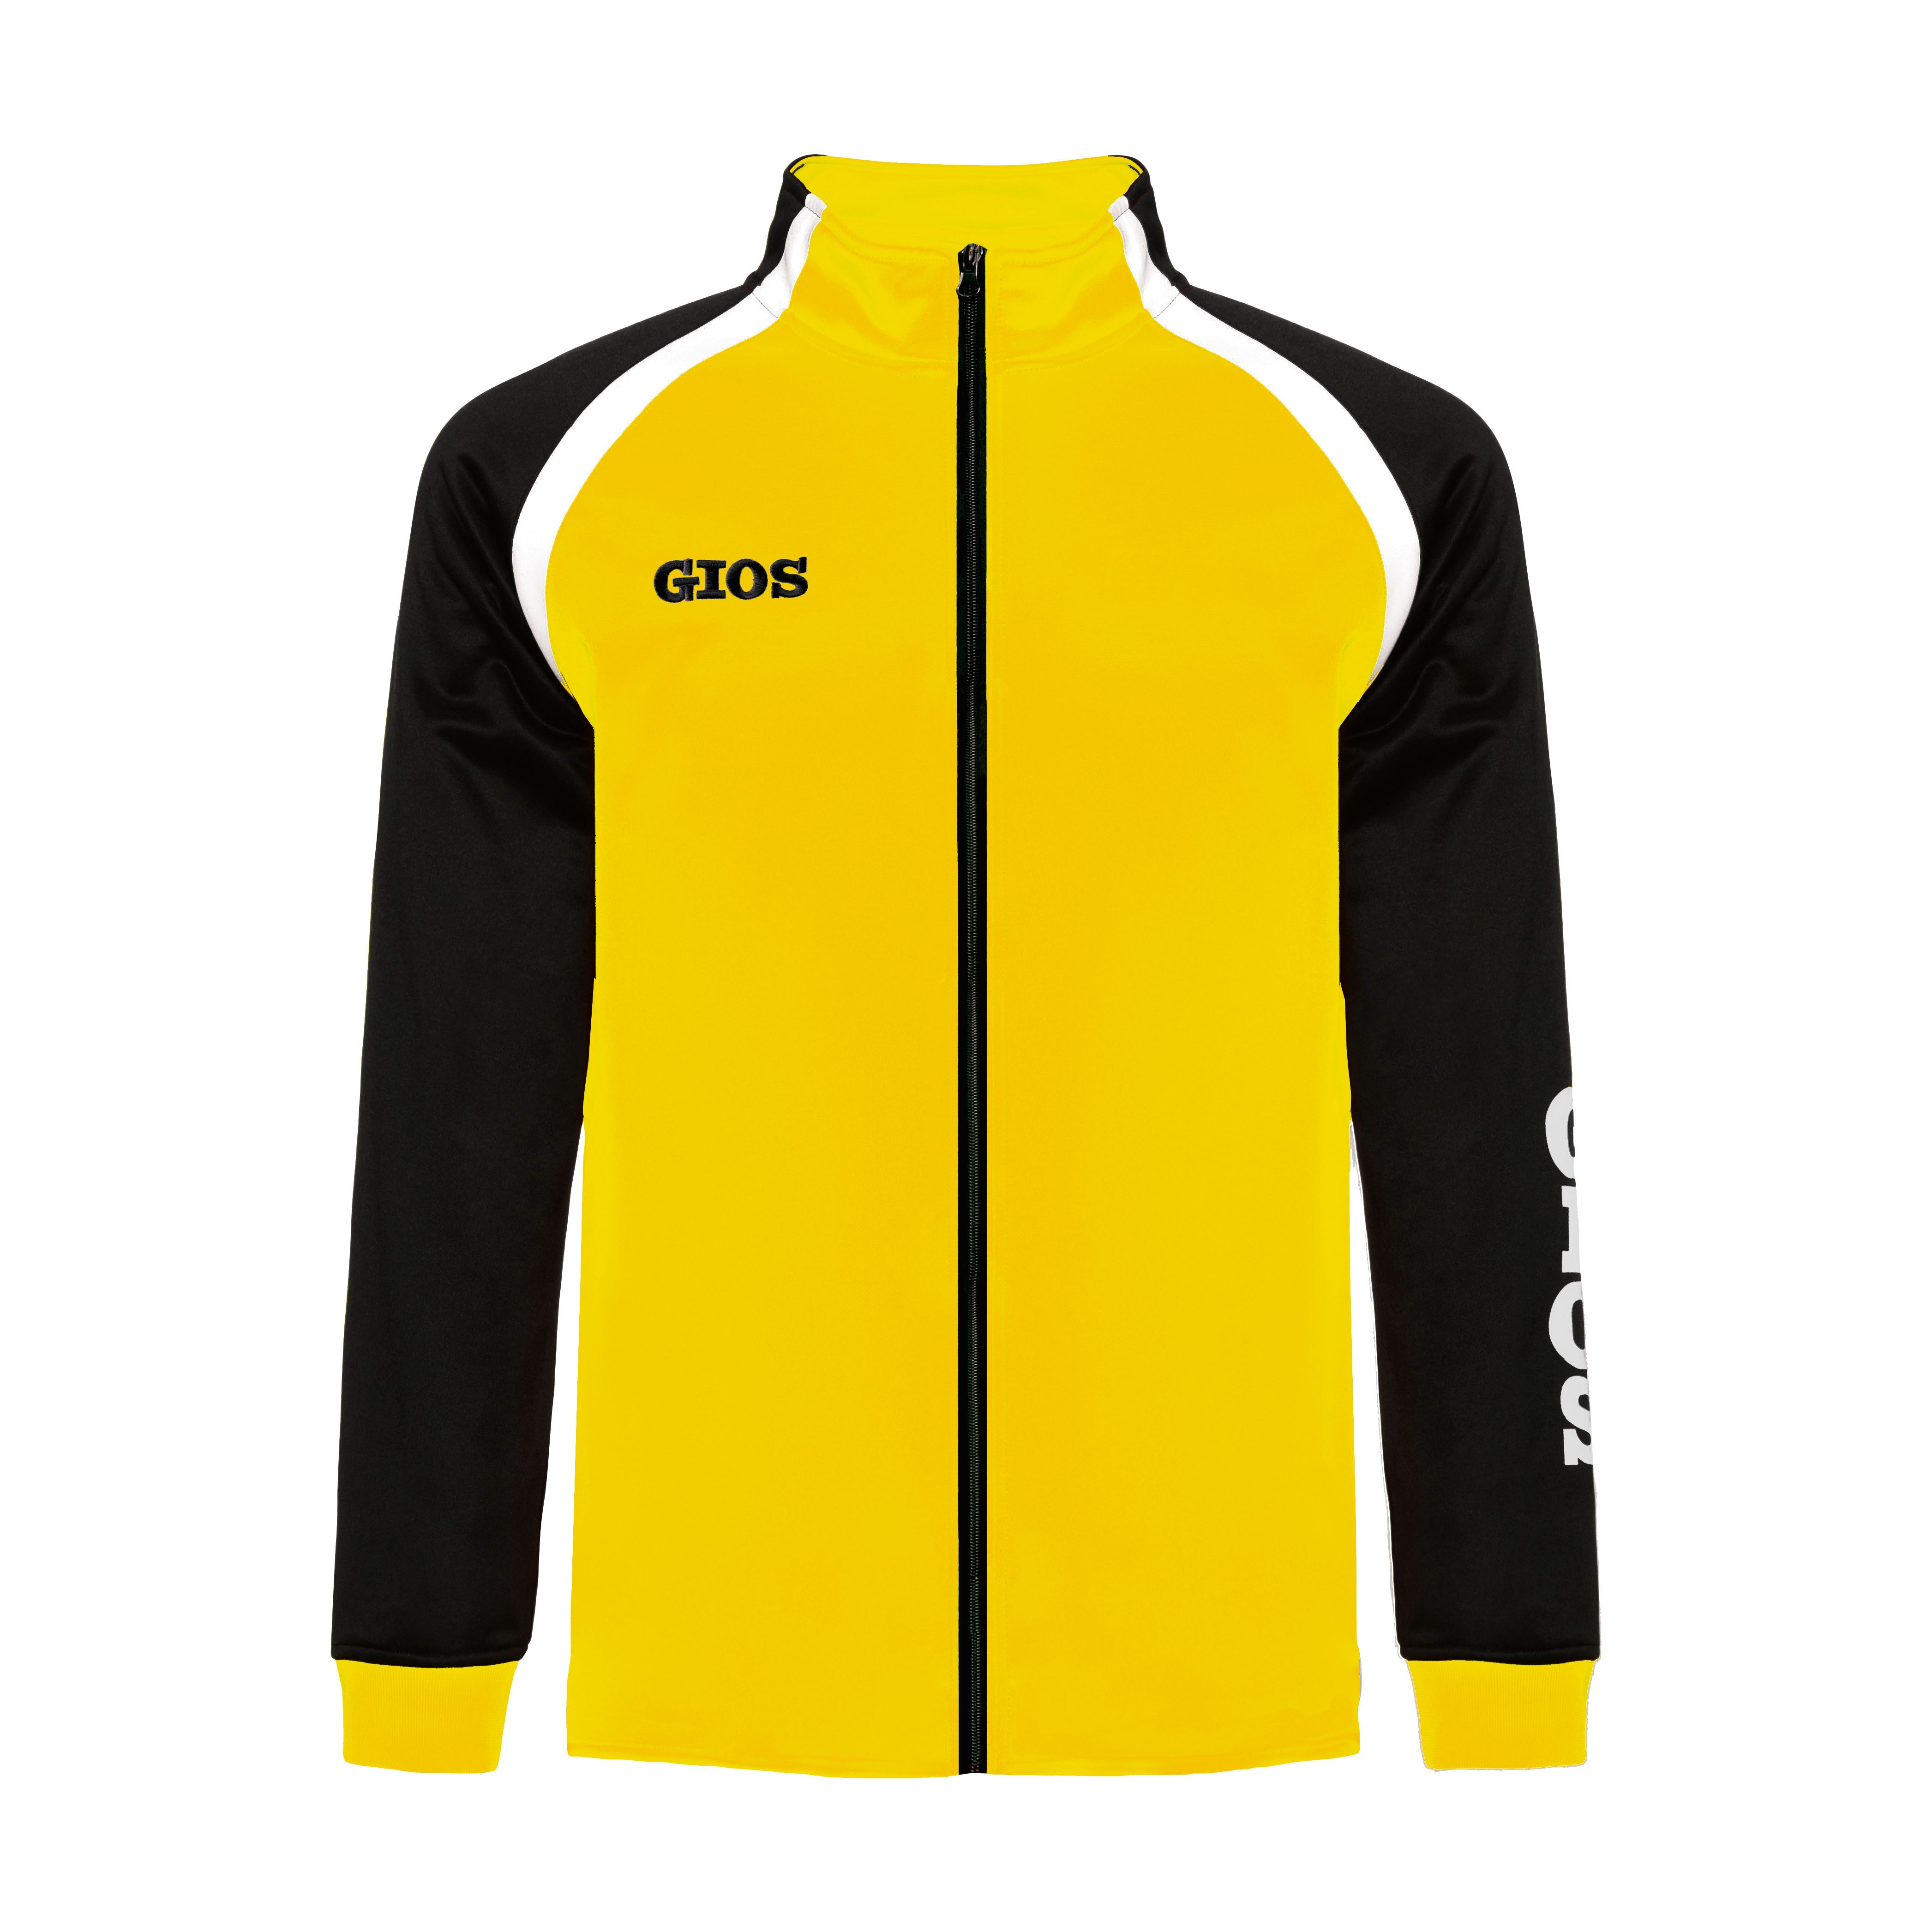 AIRONE TRACKSUIT JACKET / CHAQUETA CHÁNDAL AIRONE YELLOW/BLACK